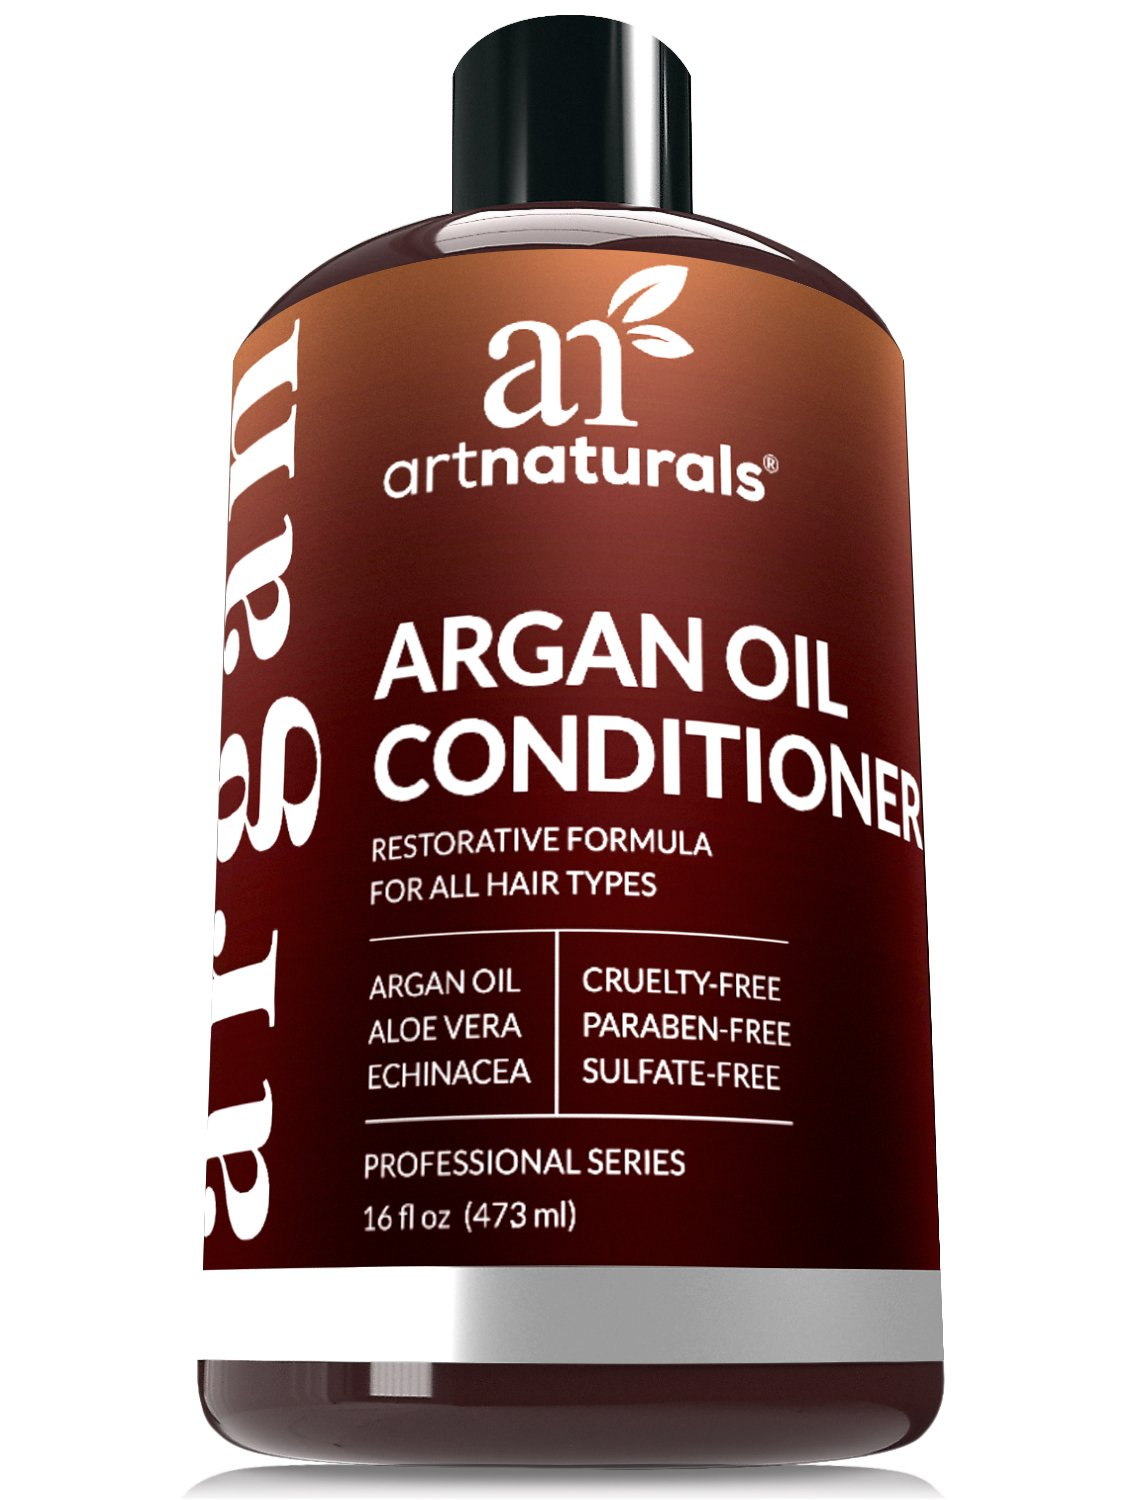 ArtNaturals Argan Oil Hair Conditioner - 16 Oz - Sulfate Free - Best Treatment for Damaged & Dry Hair - Made with Organic Ingredients & Keratin - For All Hair Types - Safe for Color Treated Hair by ArtNaturals